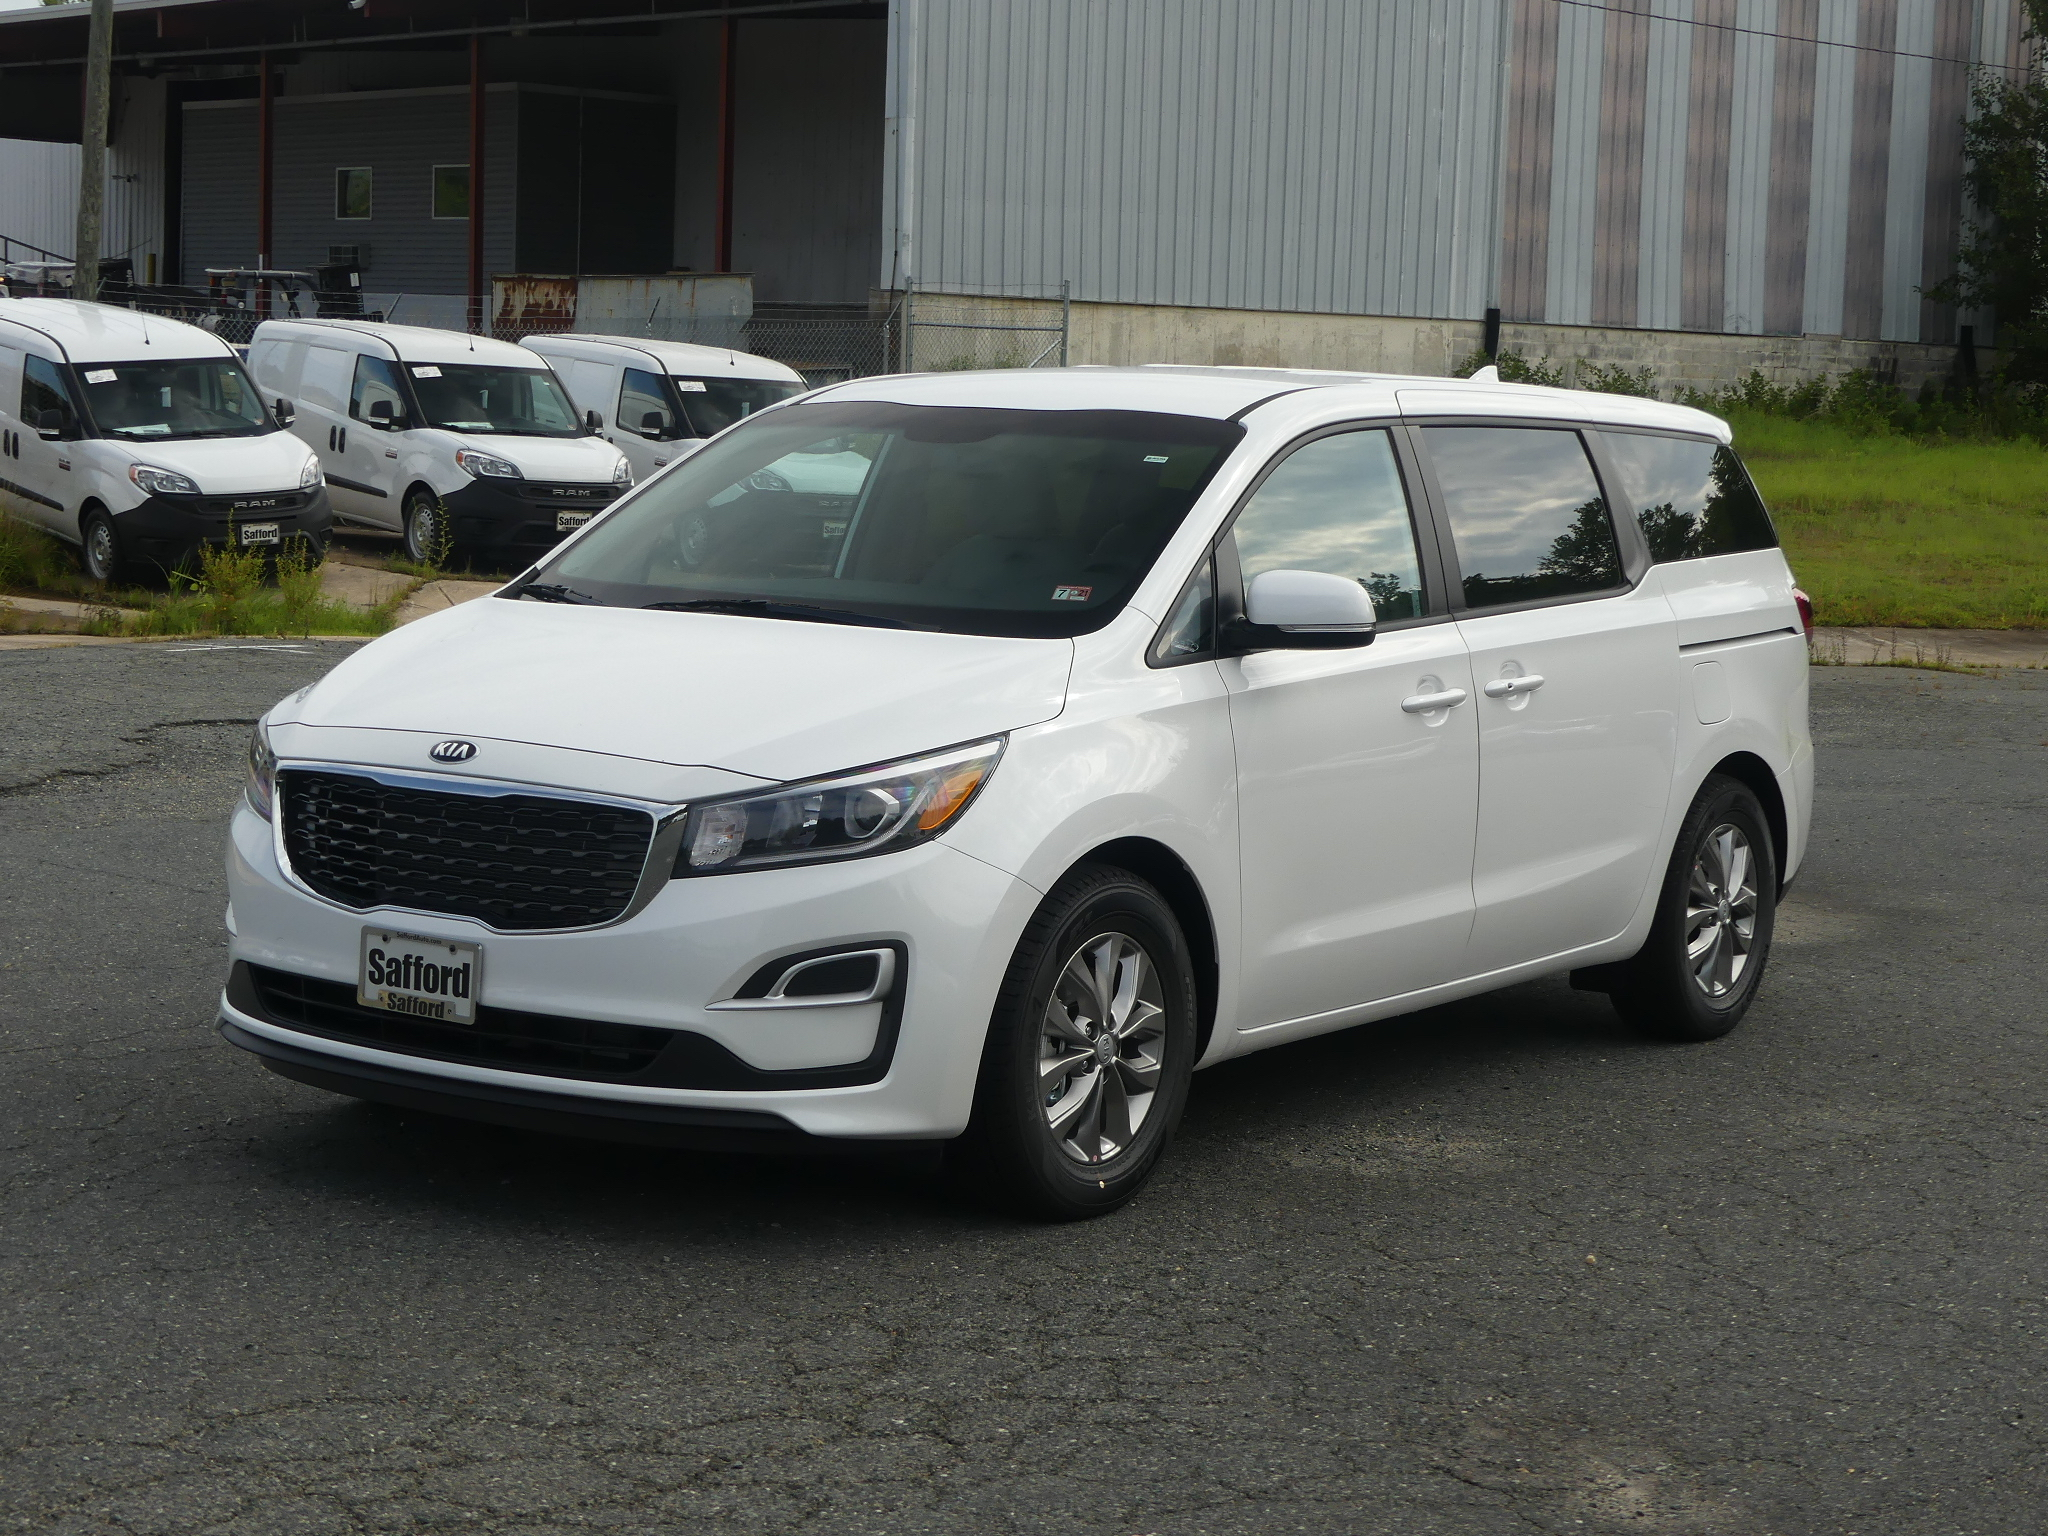 2021 Kia Sedona Car And Driver Price, Manual Transmission ...